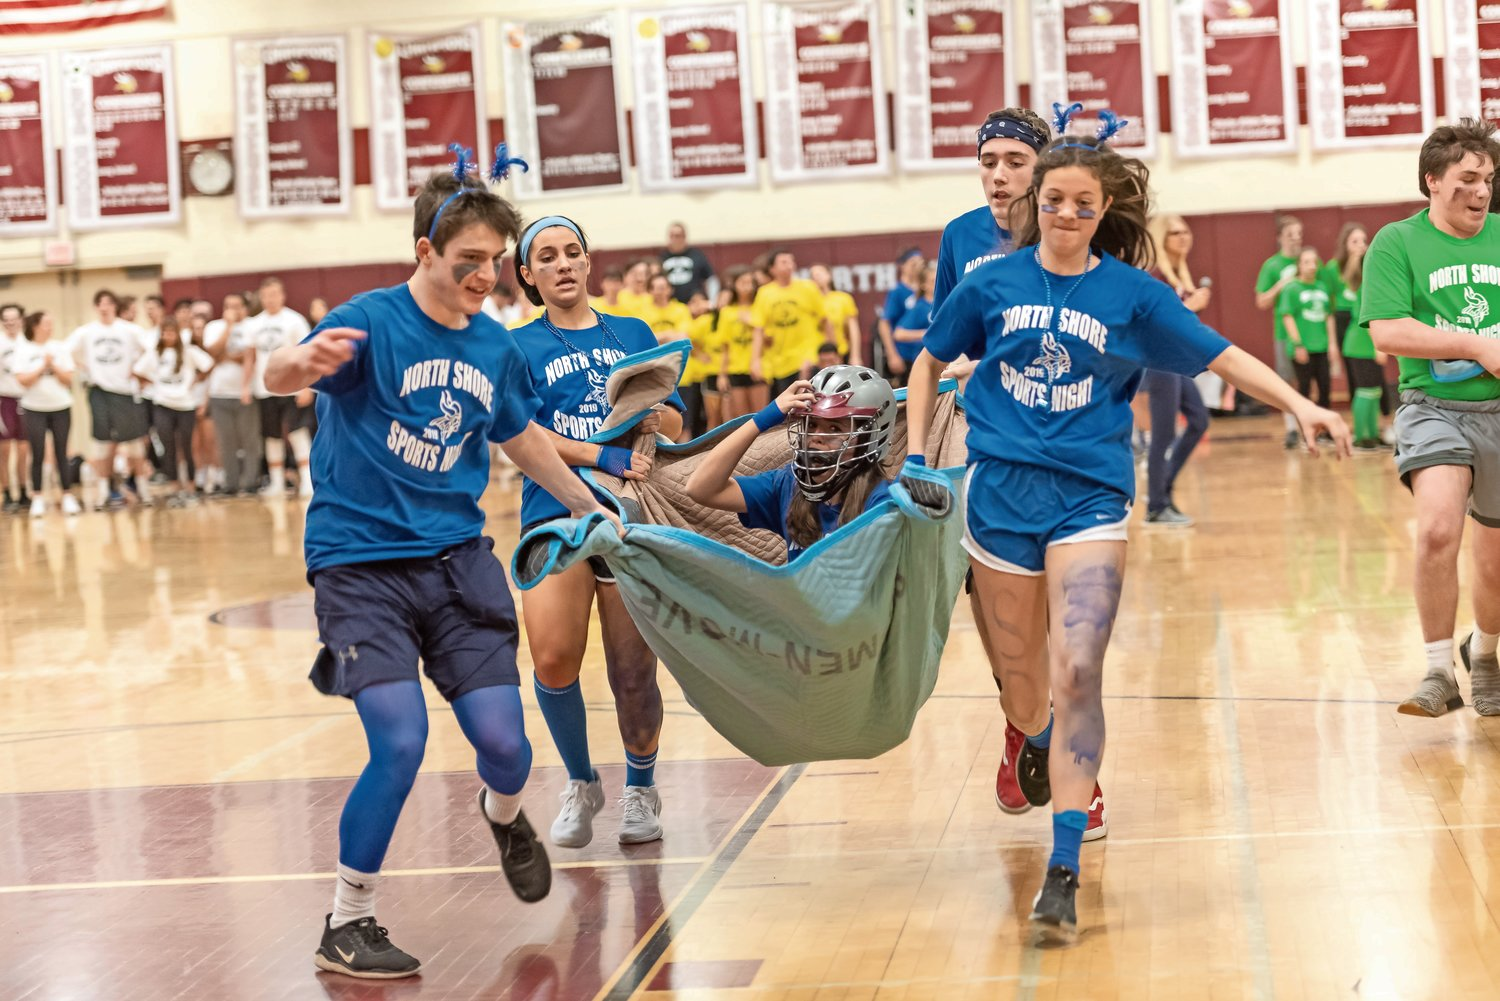 Members of the sophomore class carried one of their peers in a blanket during one of the many relay races.